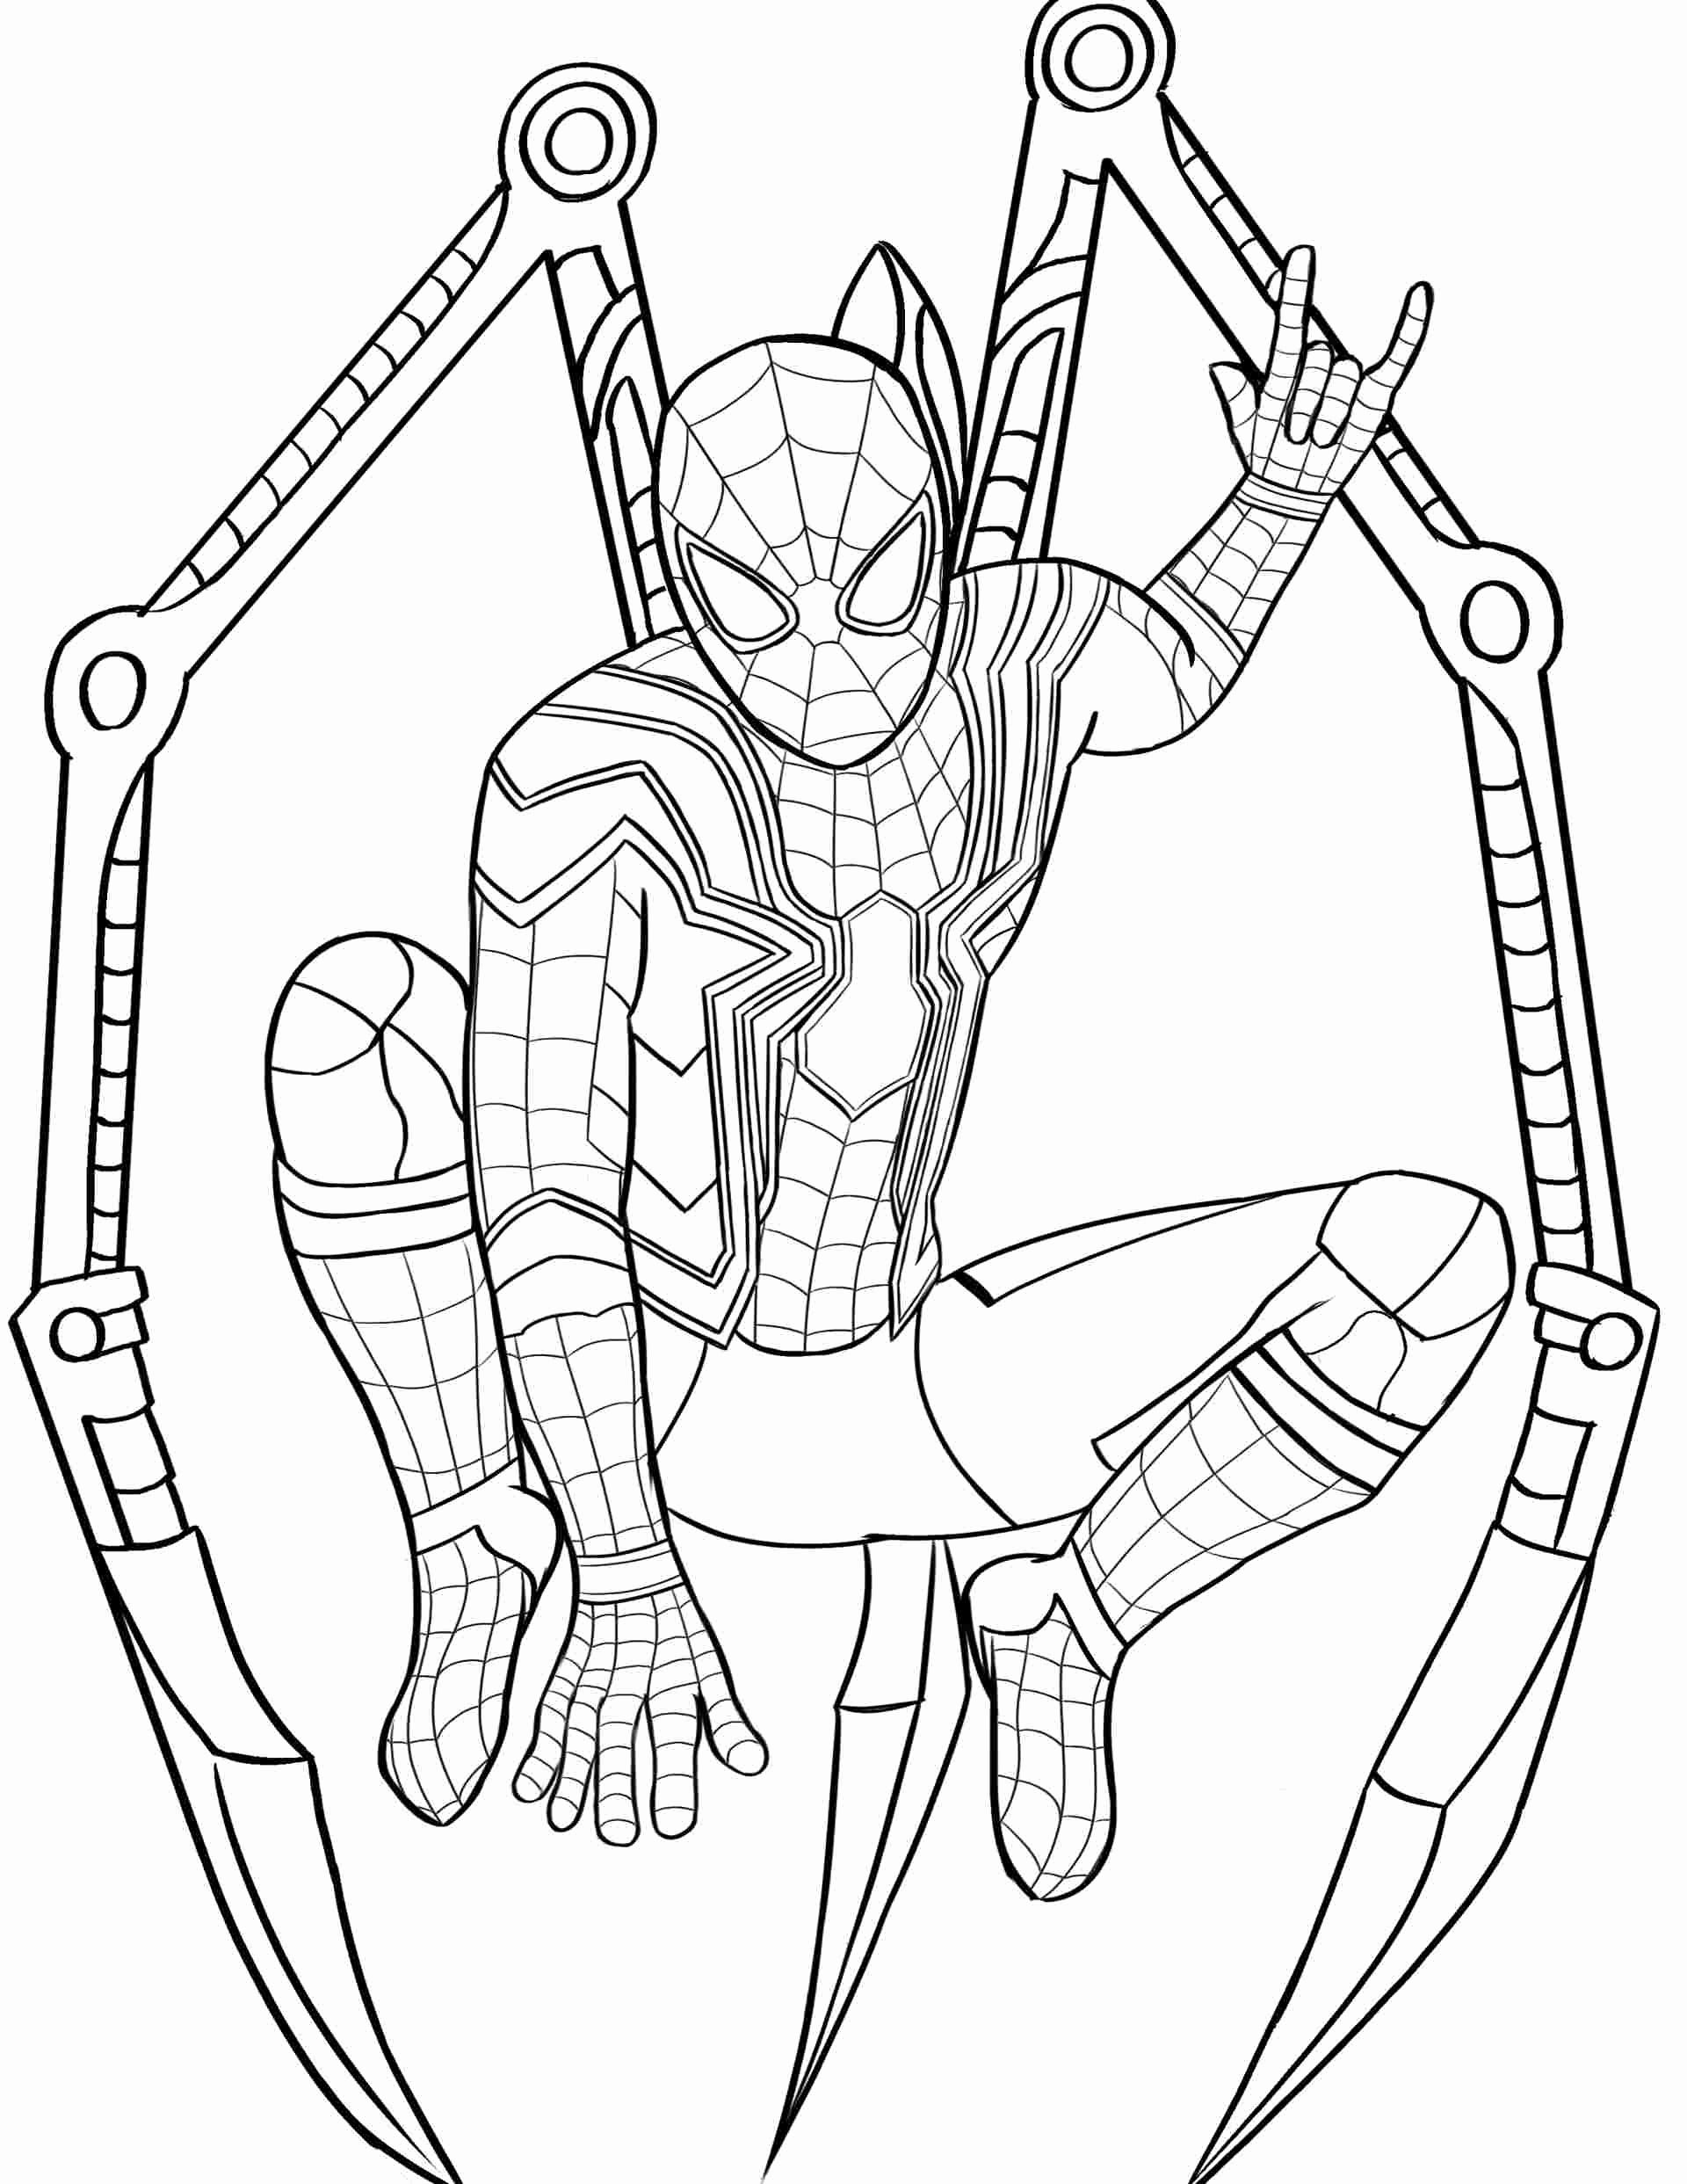 Coloring Pages Of A Avengers Iron Spiderman Suit For Kids In 2021 Spider Coloring Page Avengers Coloring Avengers Coloring Pages